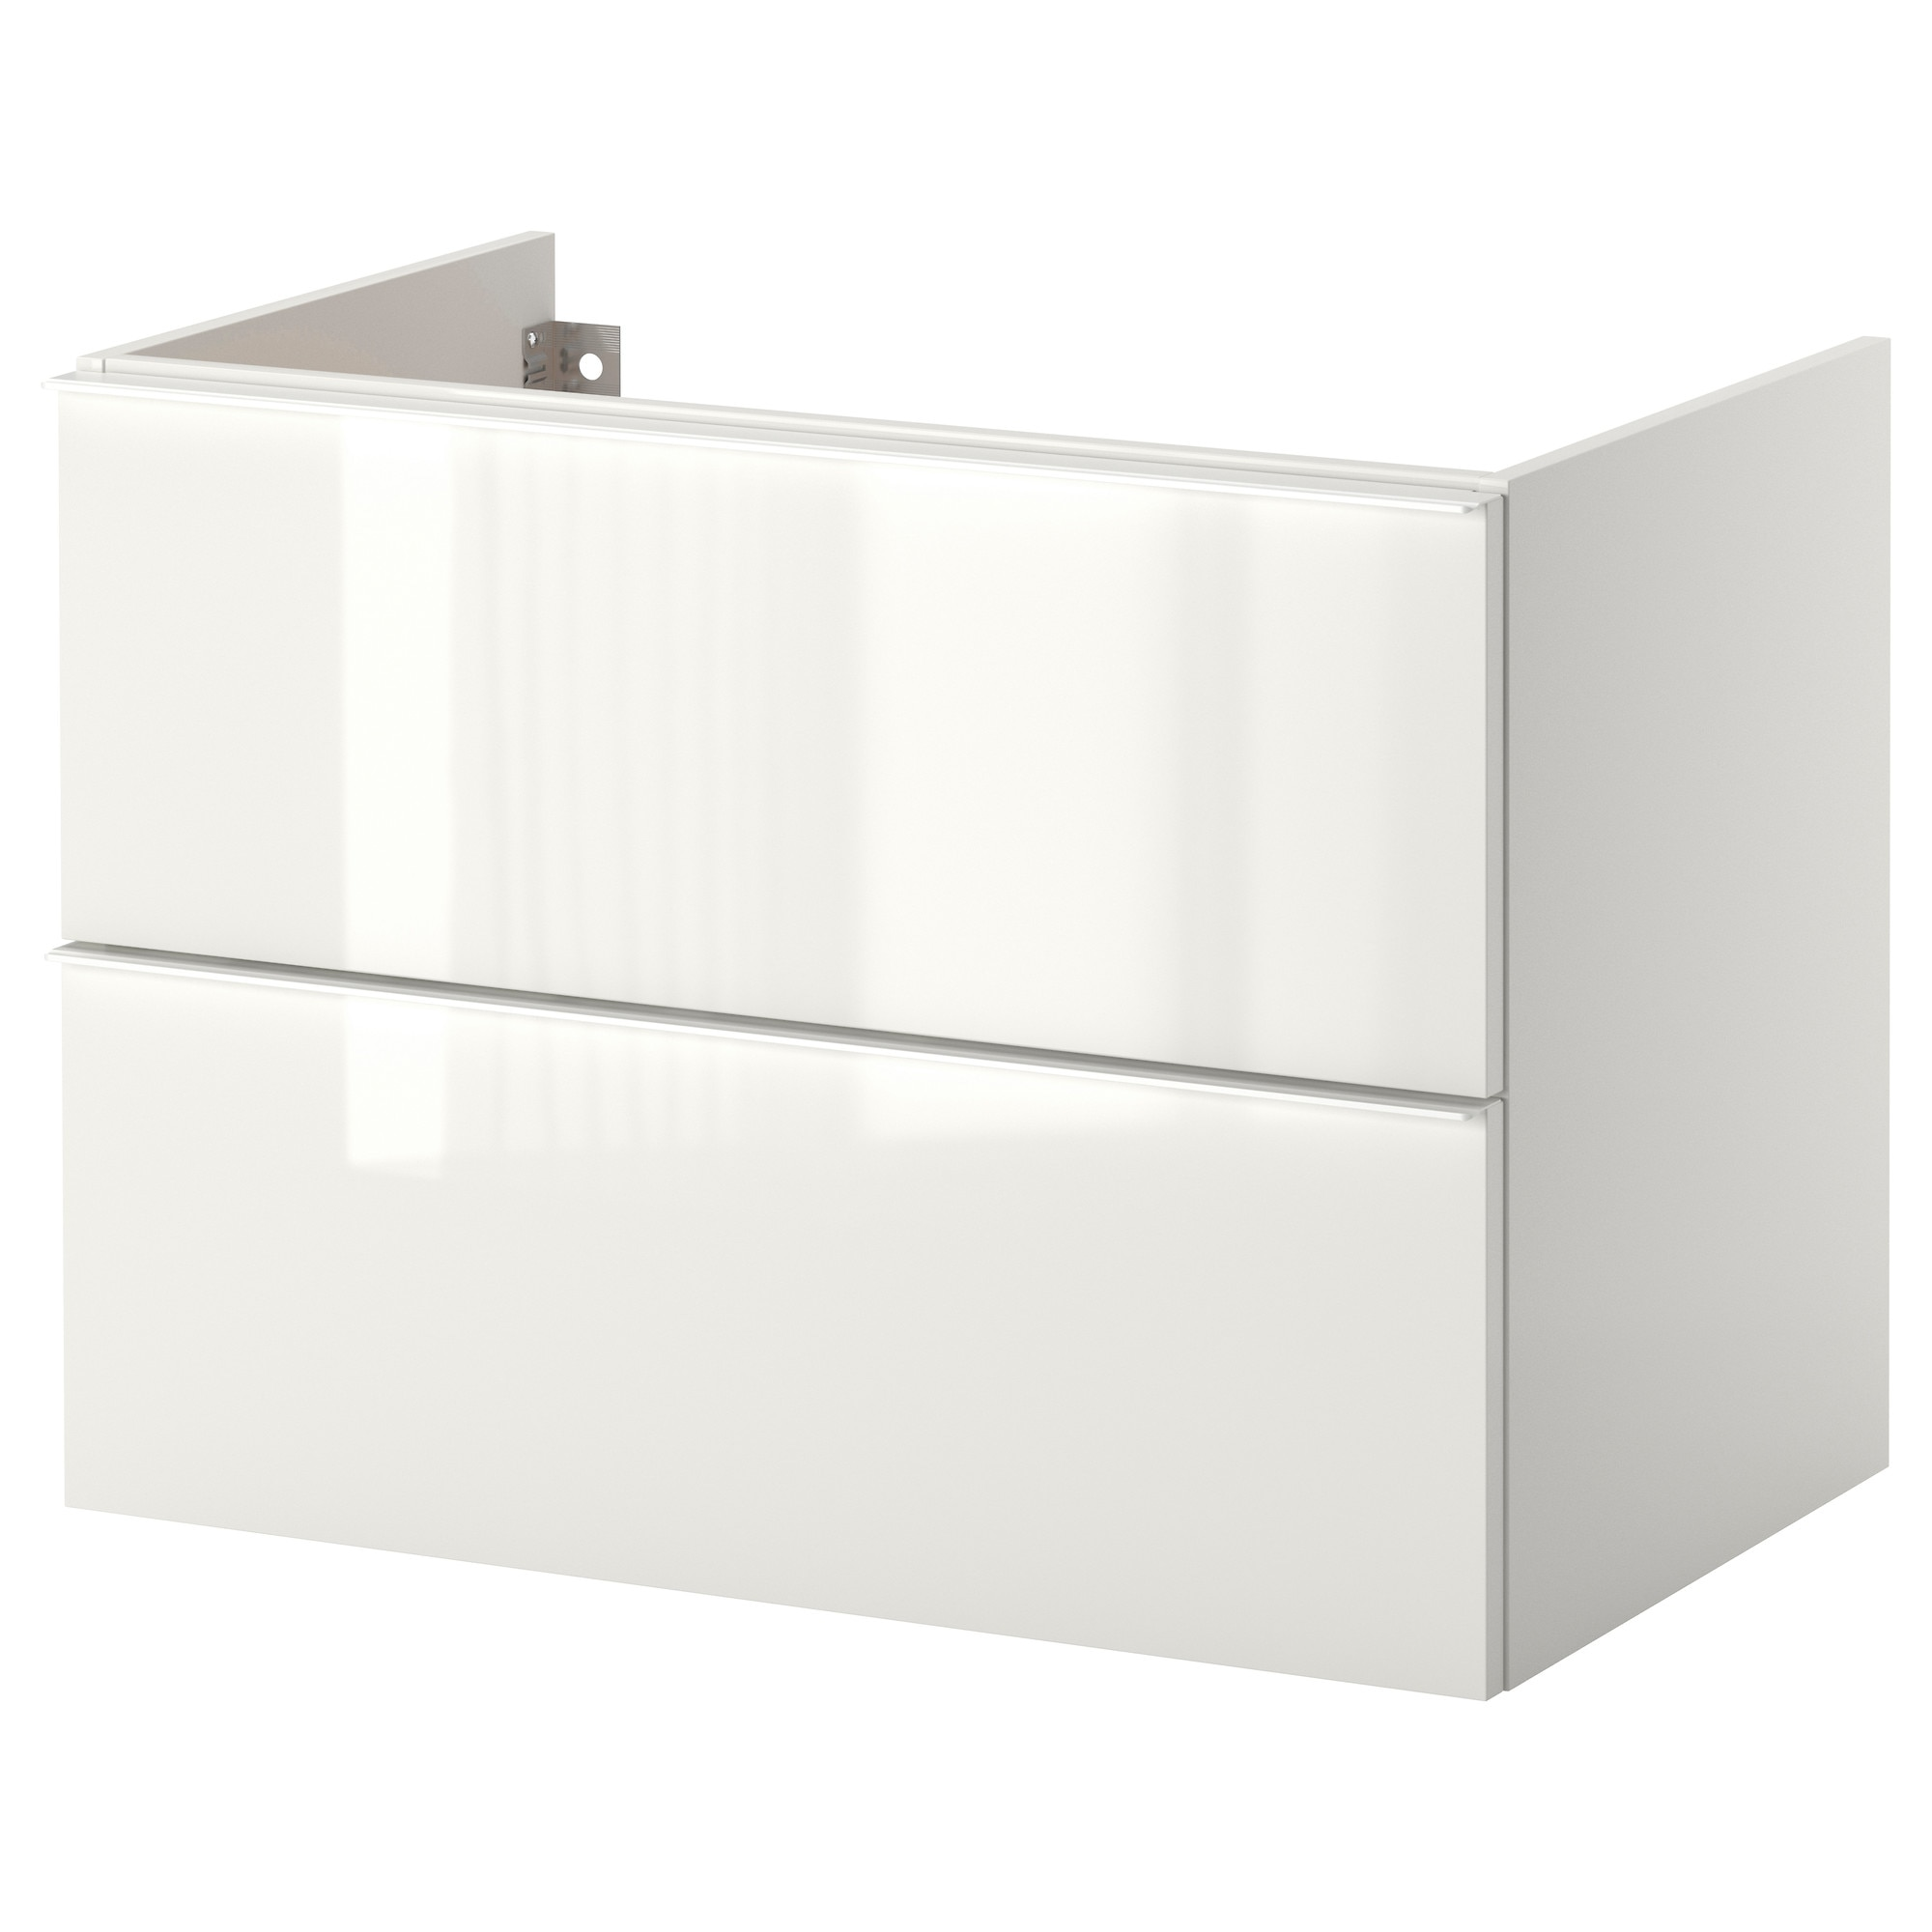 Ikea Bad Unterschrank godmorgon wash stand with 2 drawers high gloss white 80x47x58